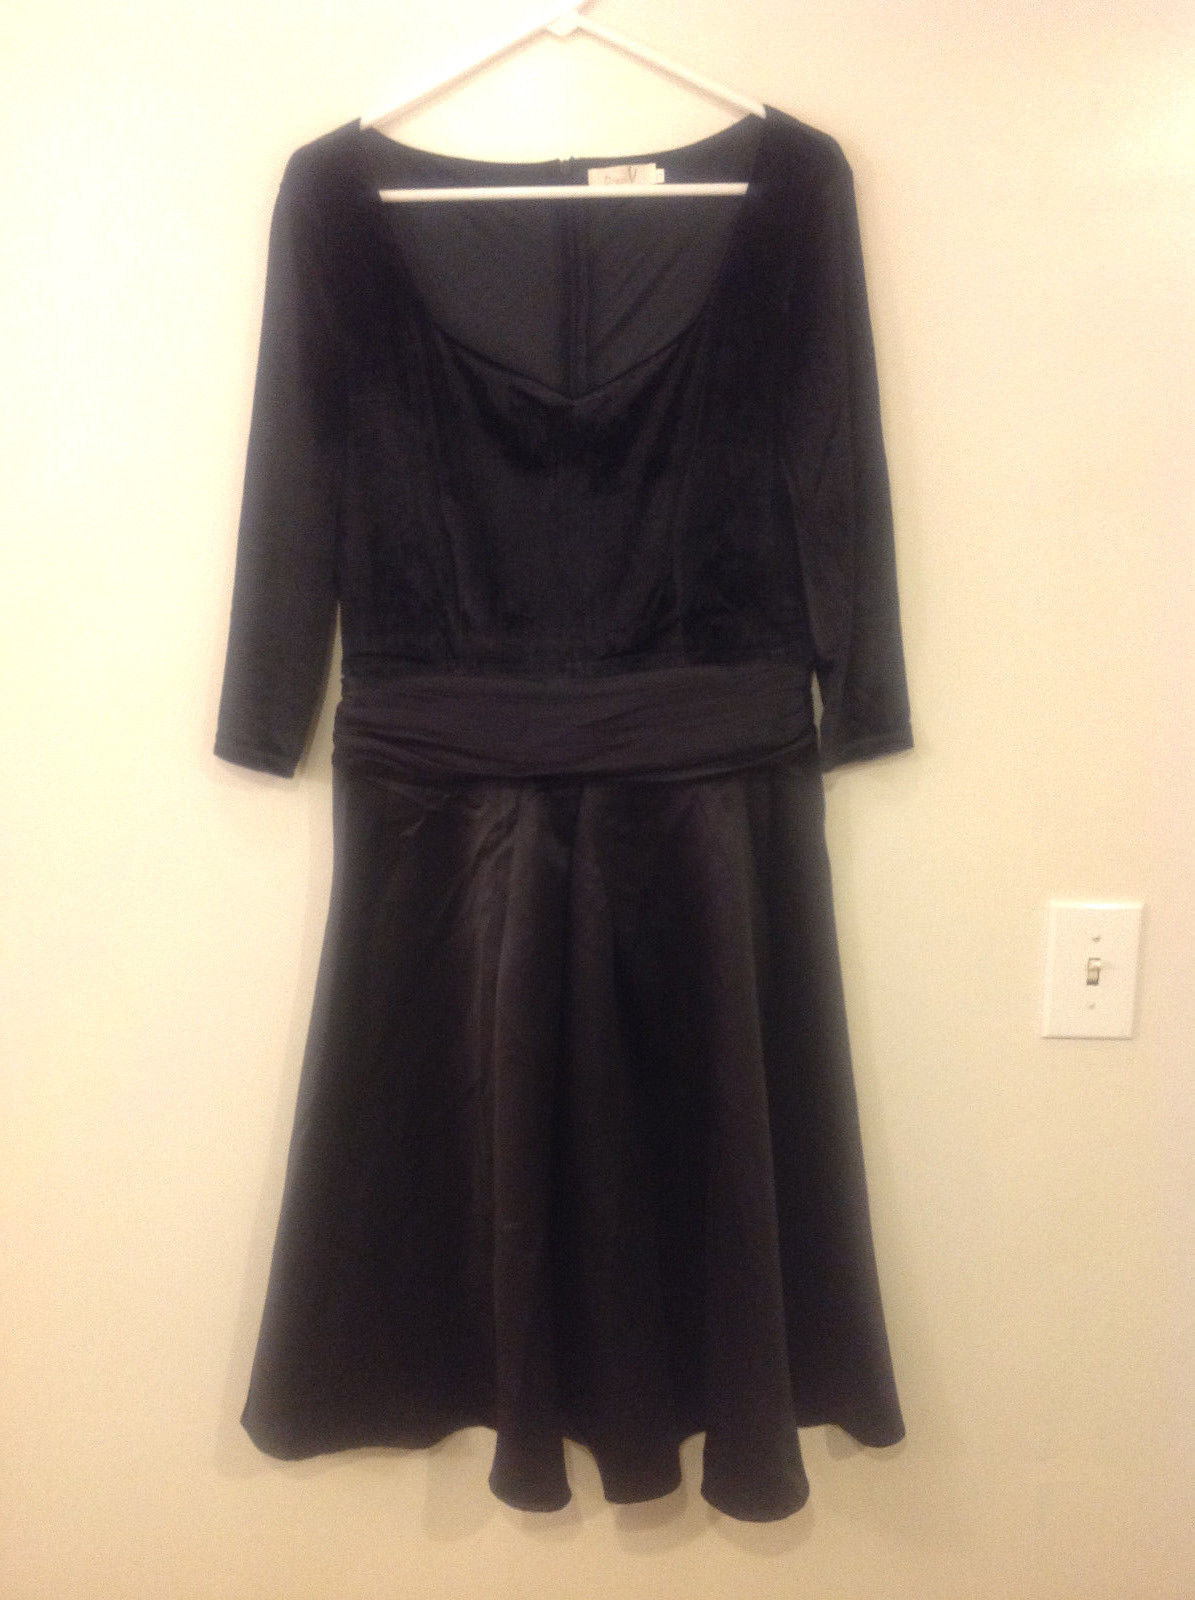 Dress V Brand Women Size 14 XL XXL Retro 50s Black Midi Holiday Party Velvet LBD